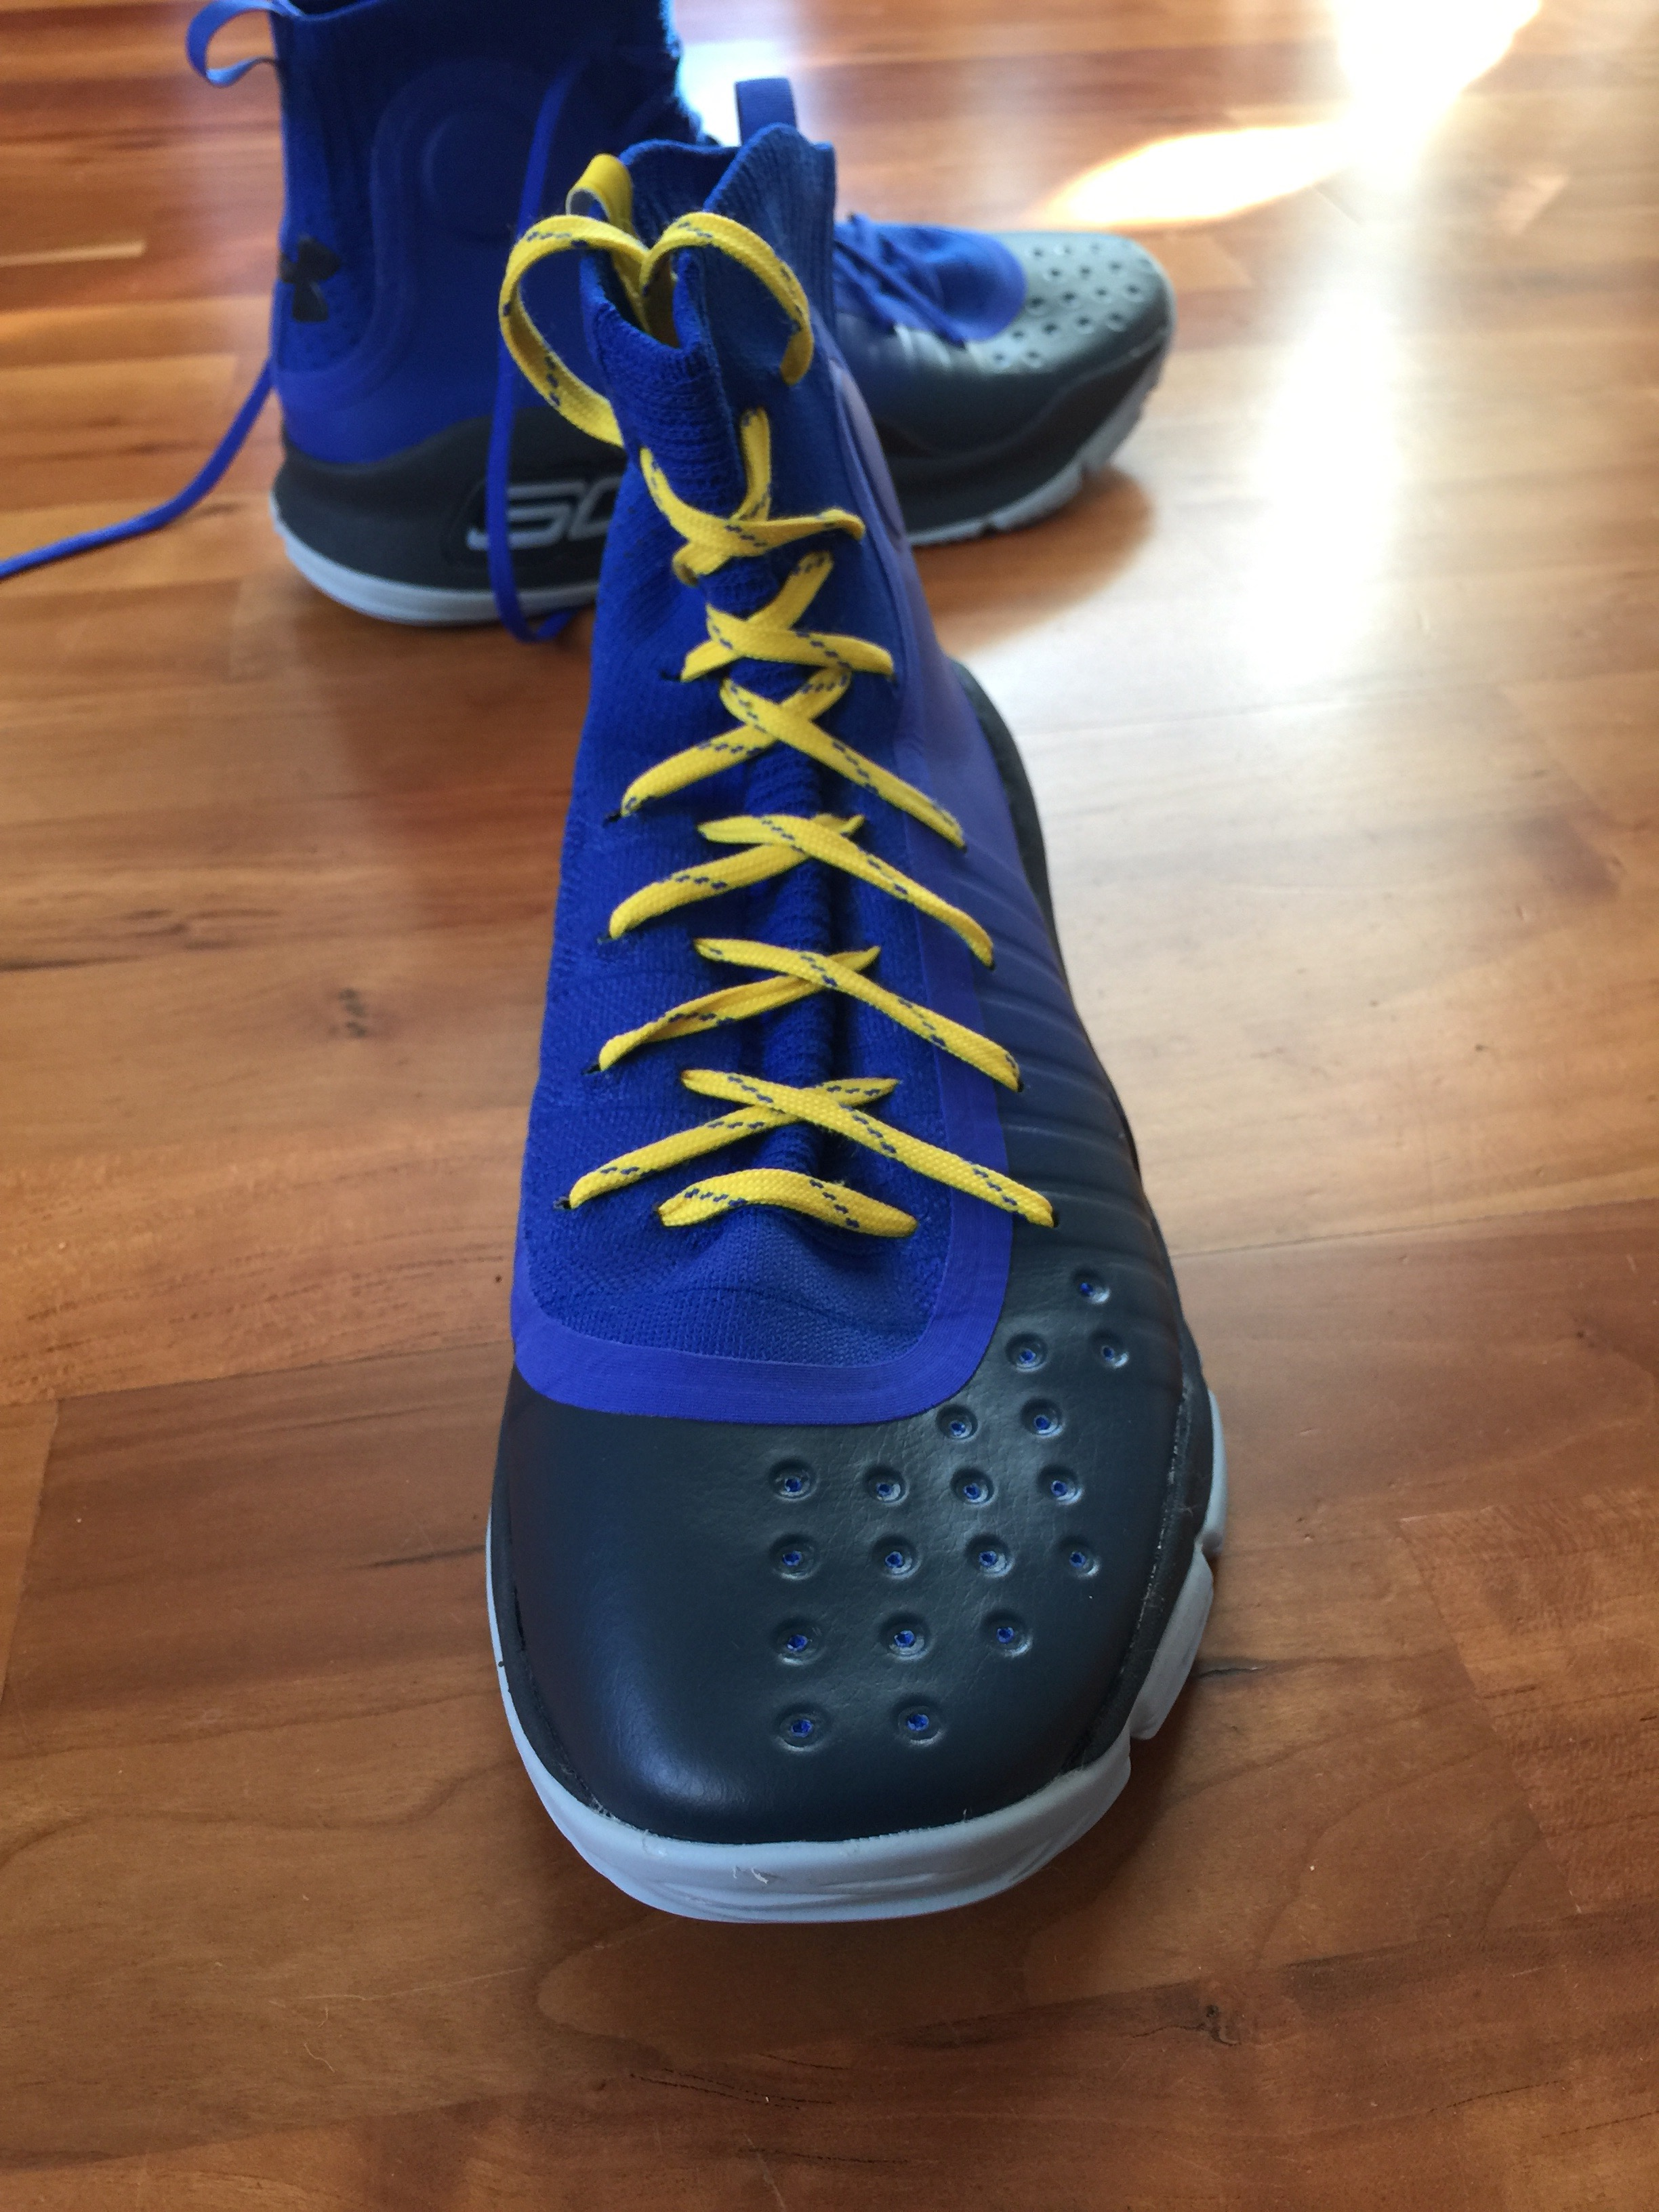 cfe1553ae2e4 Sorry this a long read so here is a summary. True to size for most but  bring a variety of socks. Wide footers might want to go up half a size but  ...